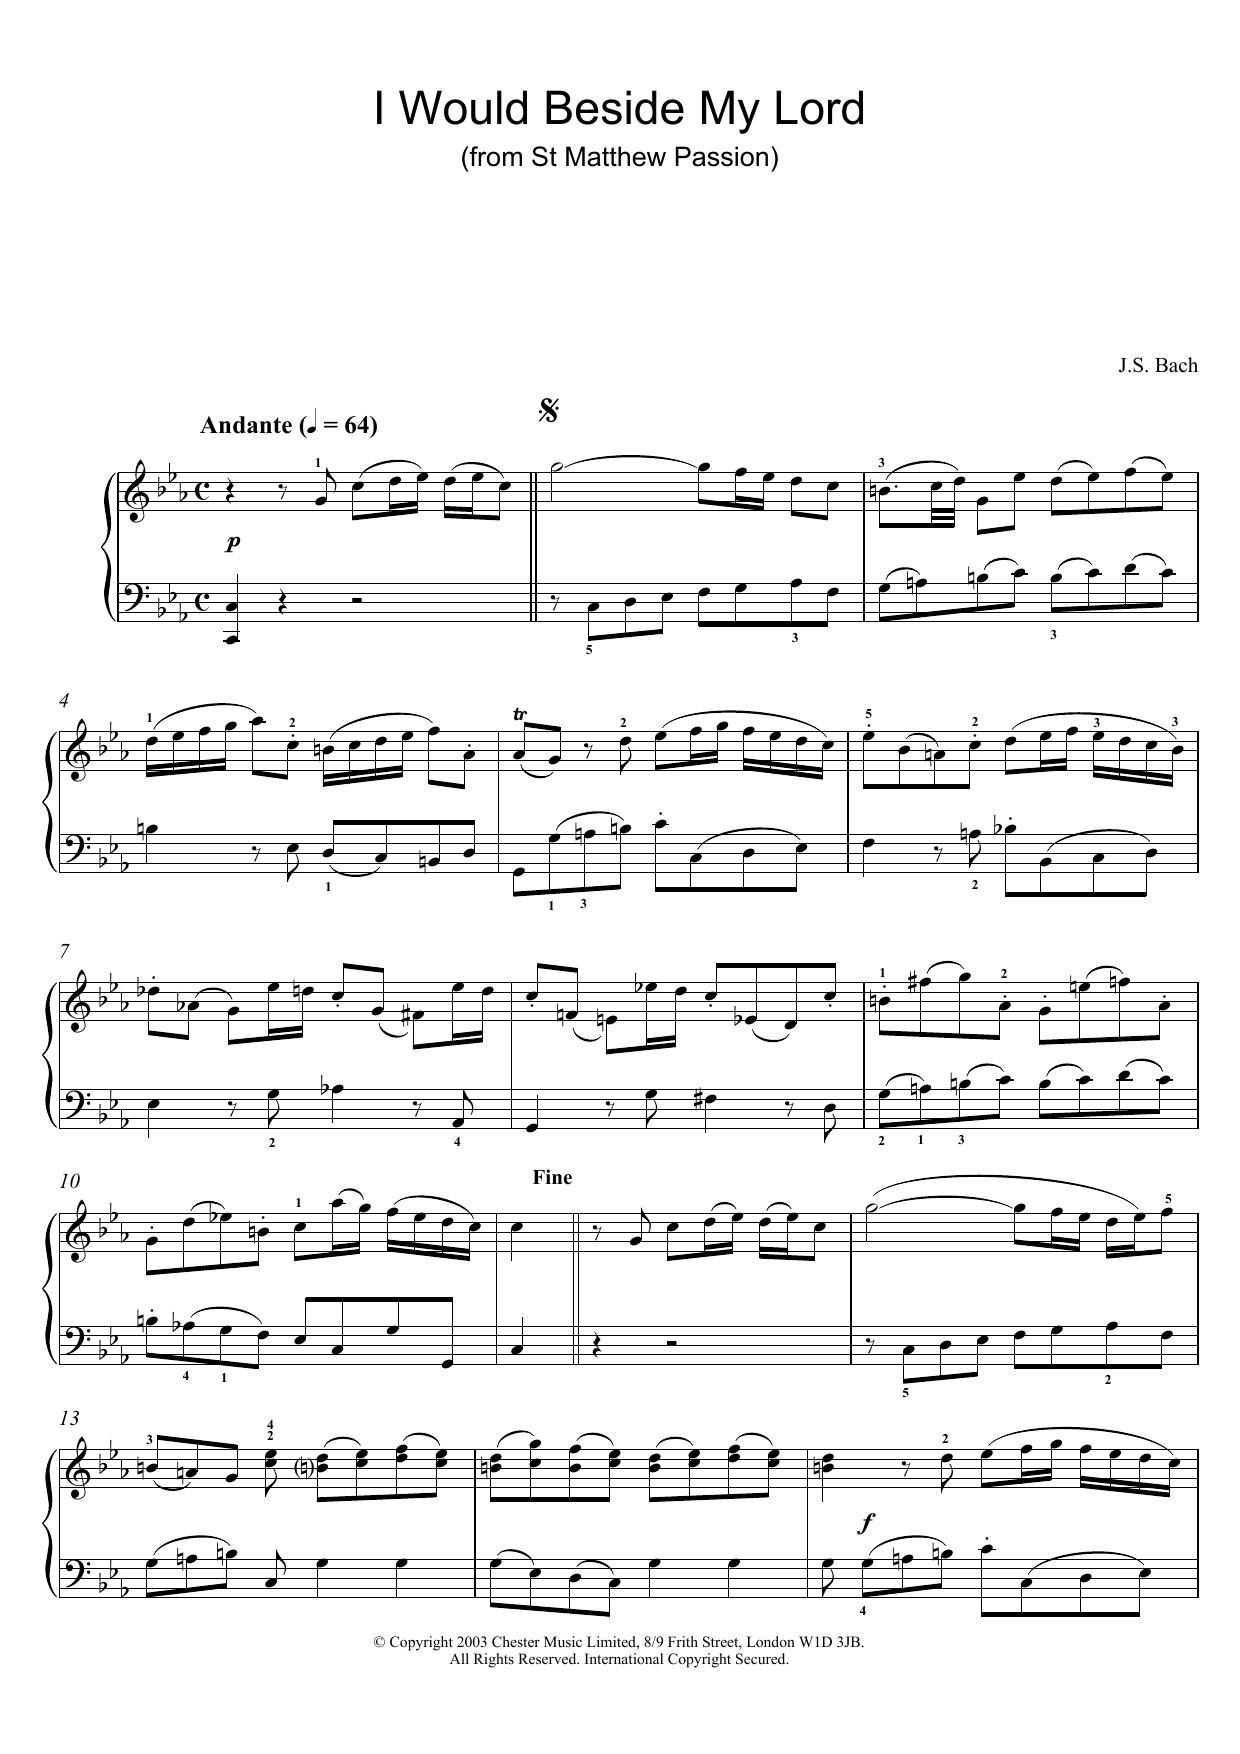 I Would Beside My Lord (from St Matthew Passion) sheet music